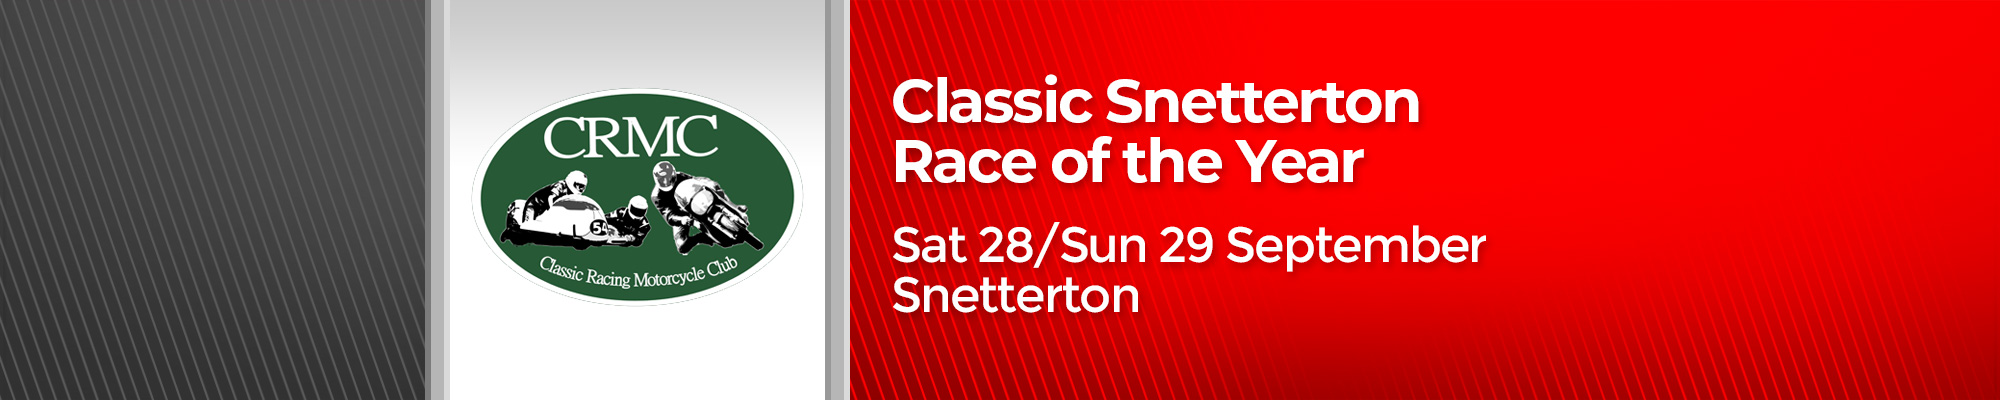 Classic Snetterton Race of the Year